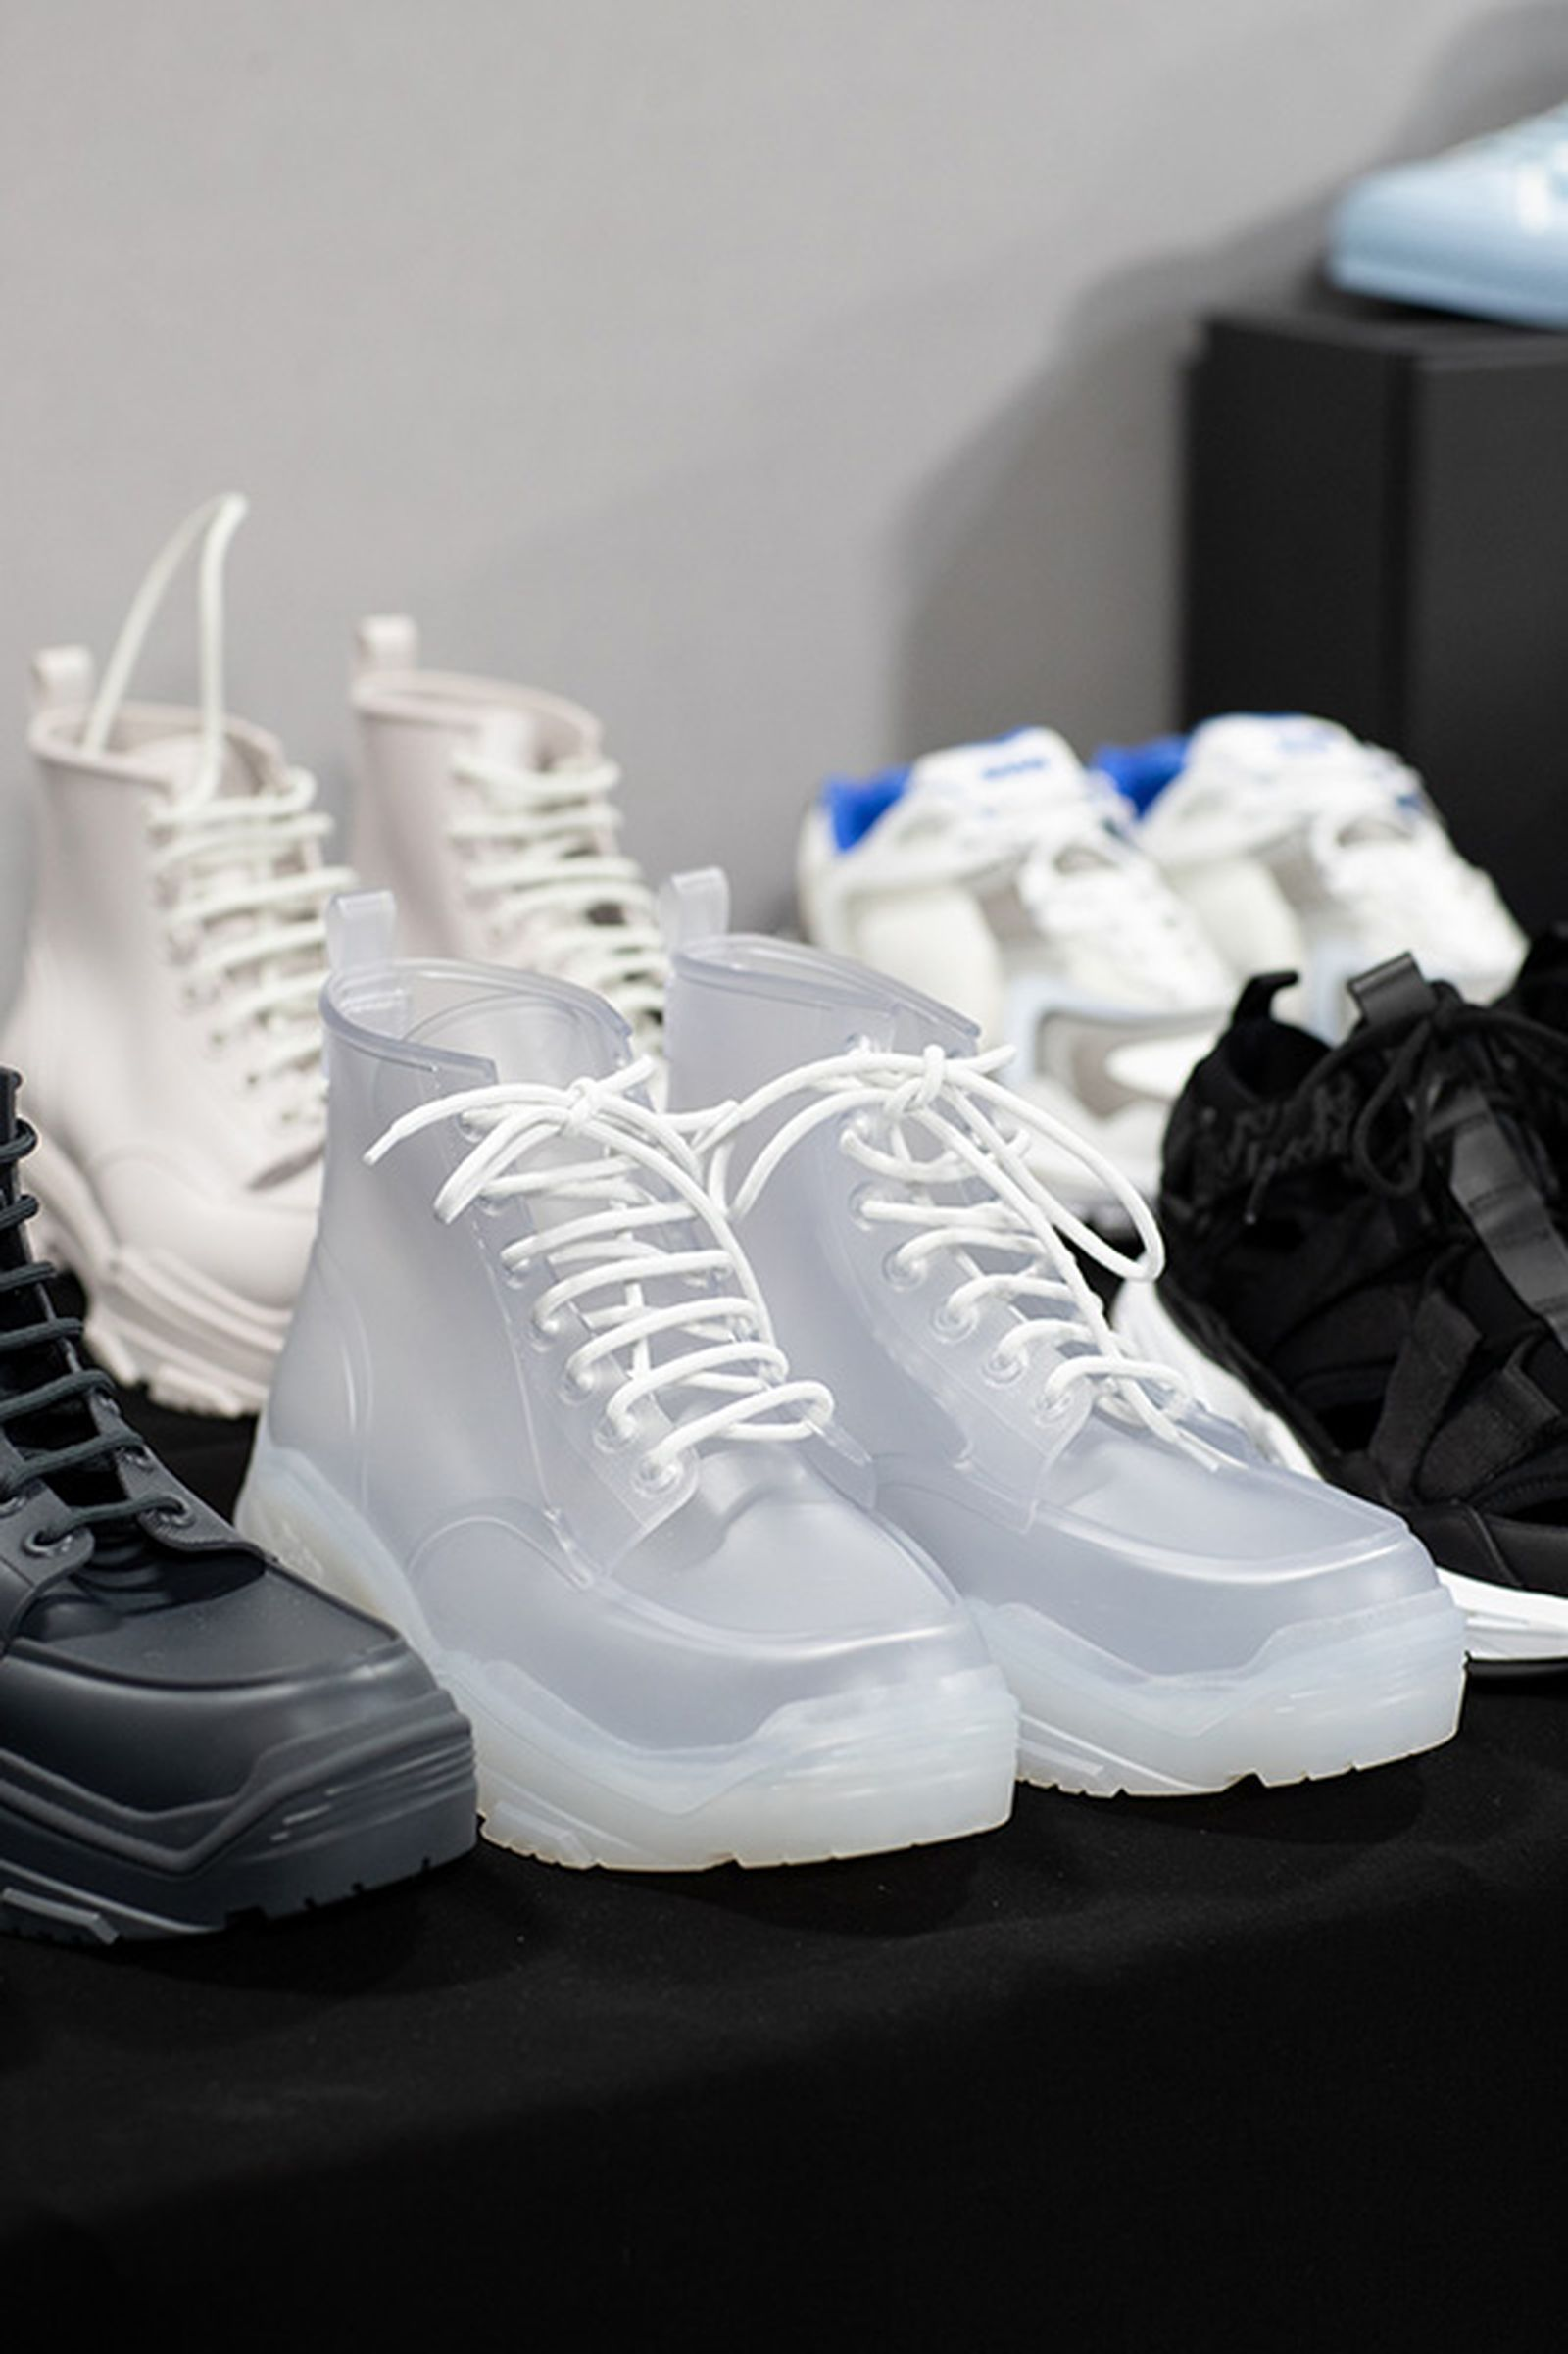 dior ss20 sneakers accessories Louis Vuitton Nike OAMC